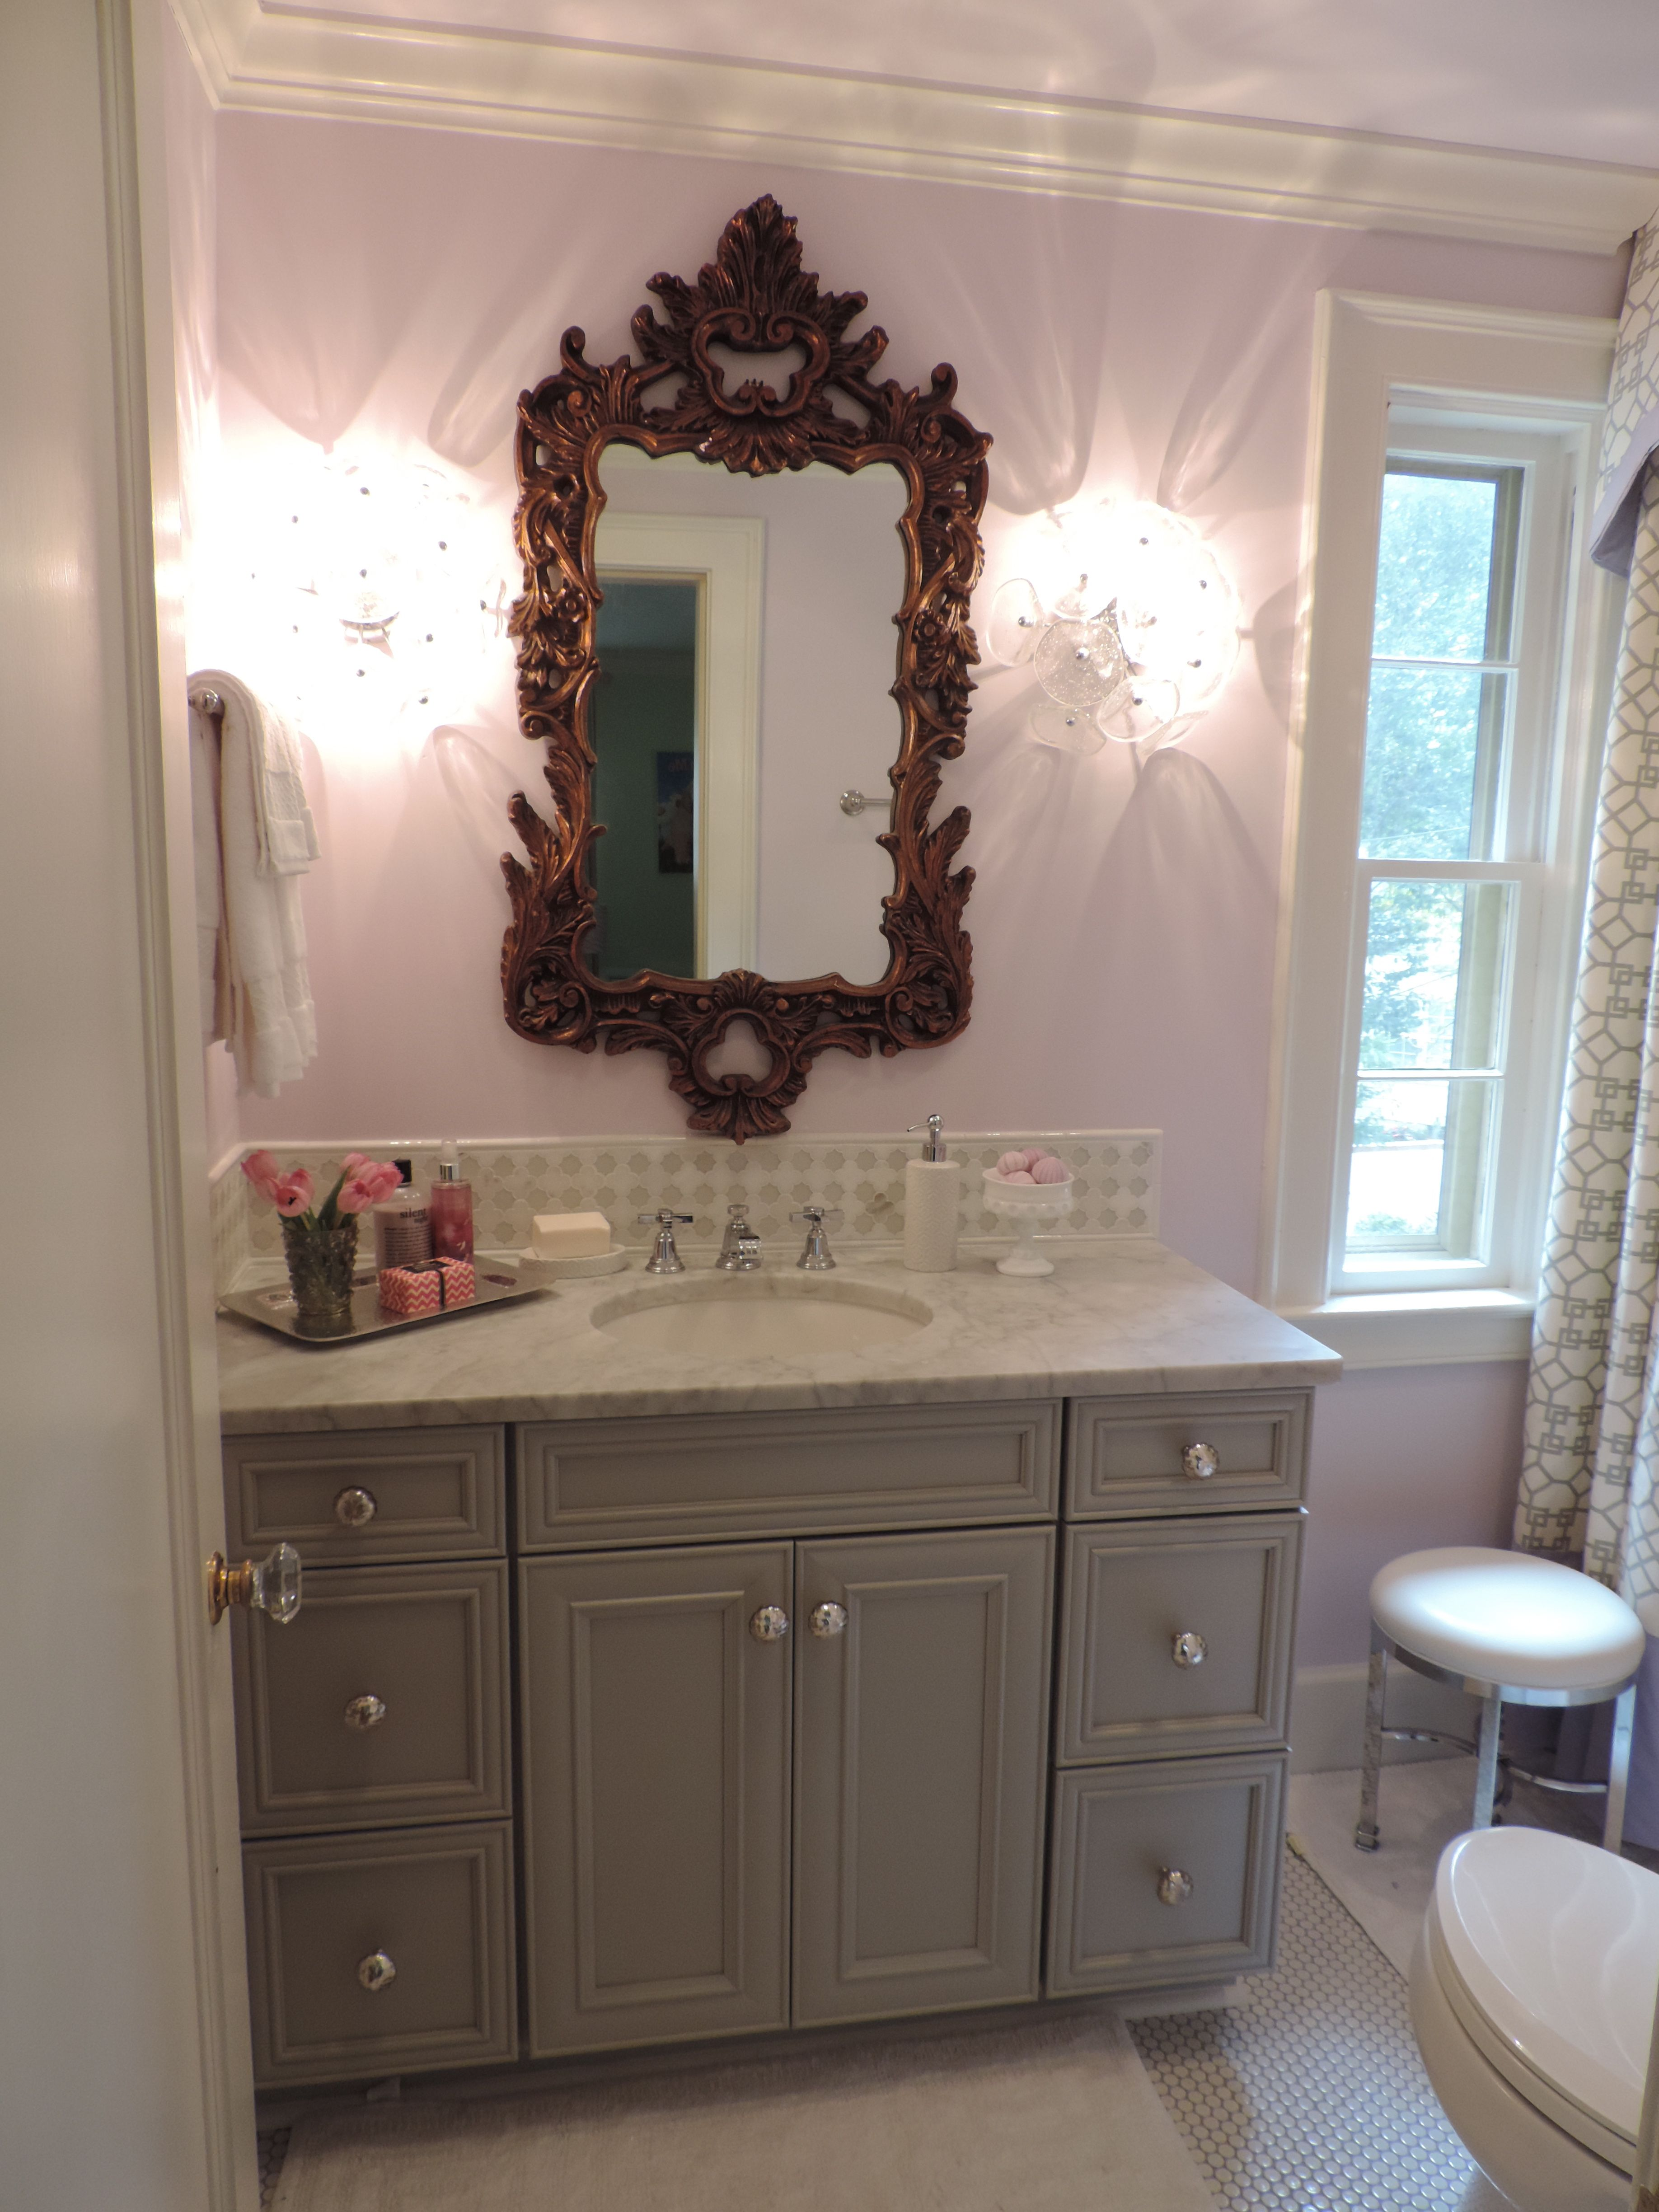 Bath Accessories From Homegoods In This Renovated Add Soft Pretty Touches